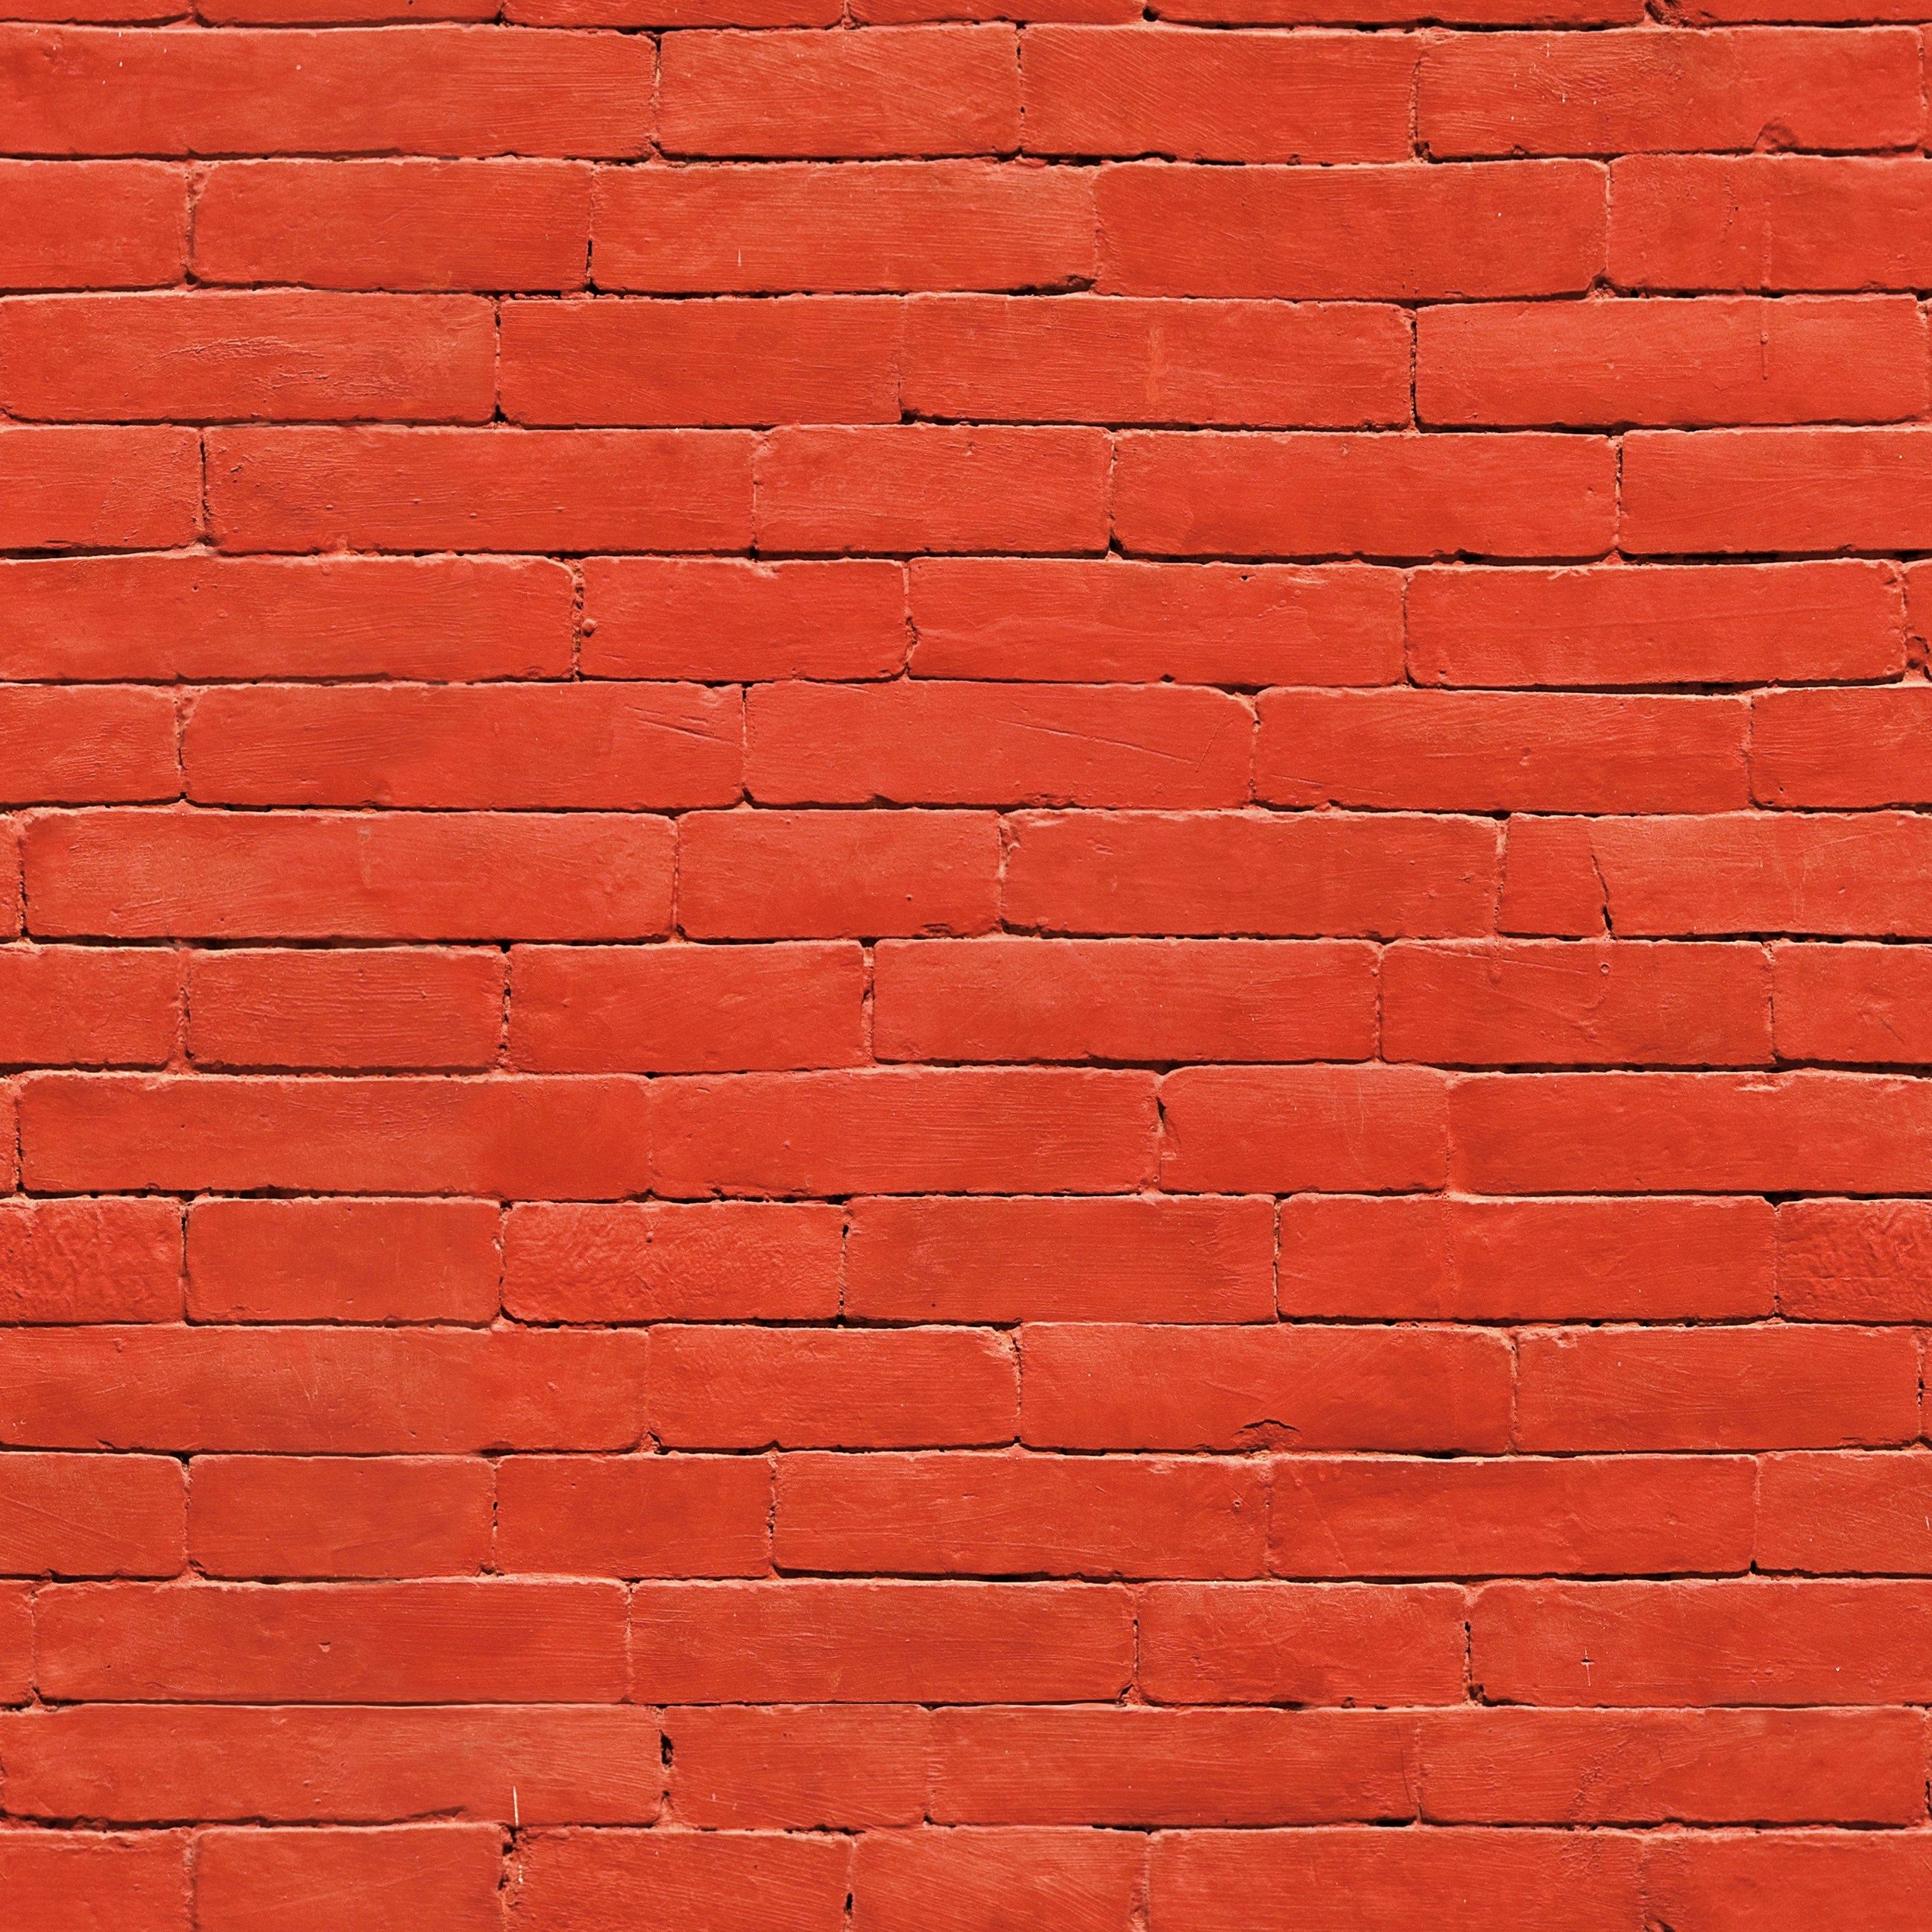 Painted Red Brick Wall Seamless Texture